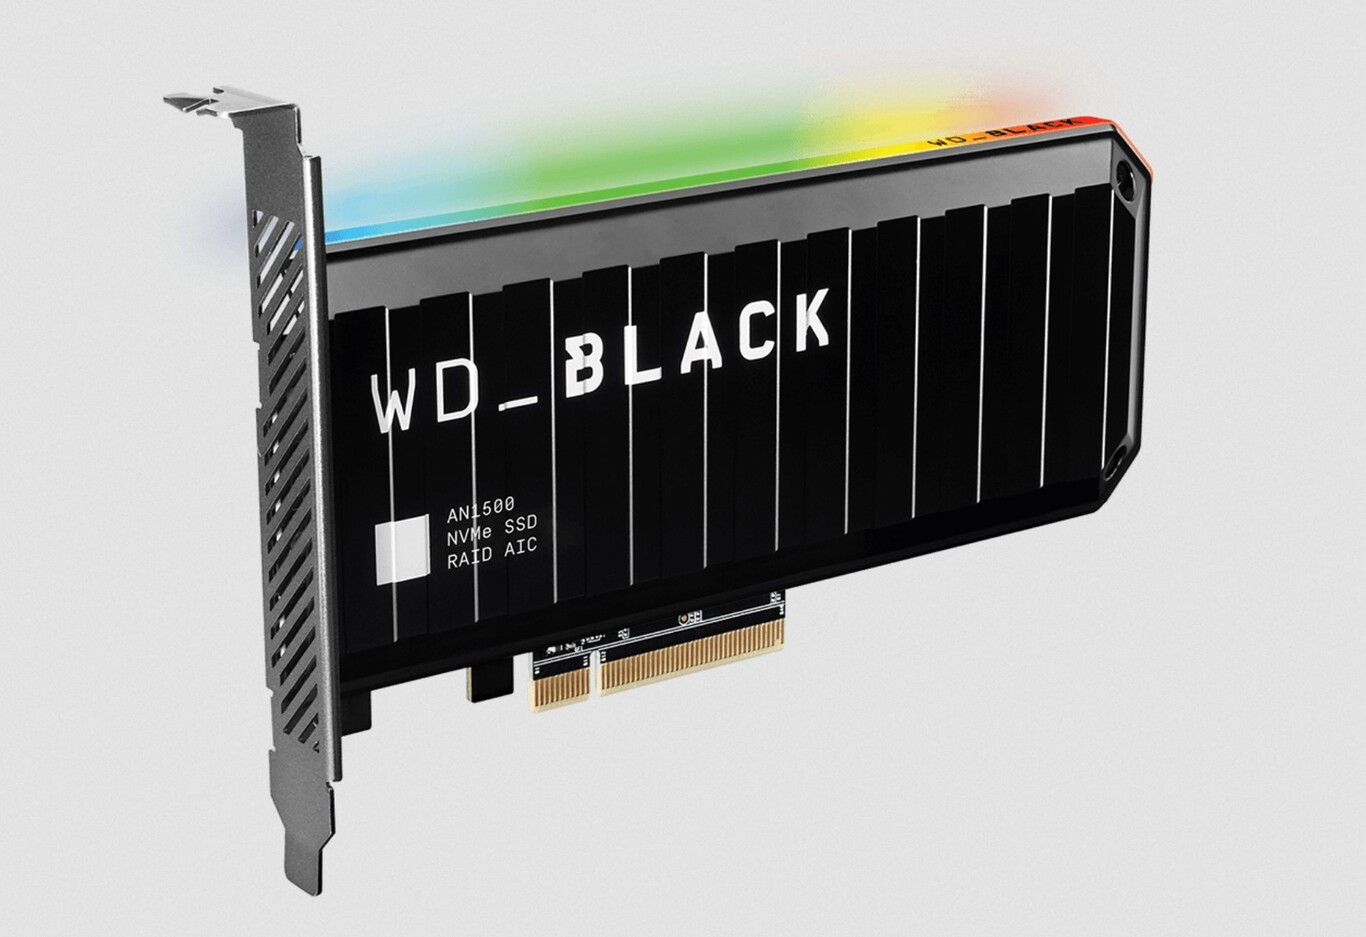 You still don't need PCIe 4.0: the new WD Black AN1500 combine two SSDs in RAID 0 to achieve transfers of up to 6,500 MB / s